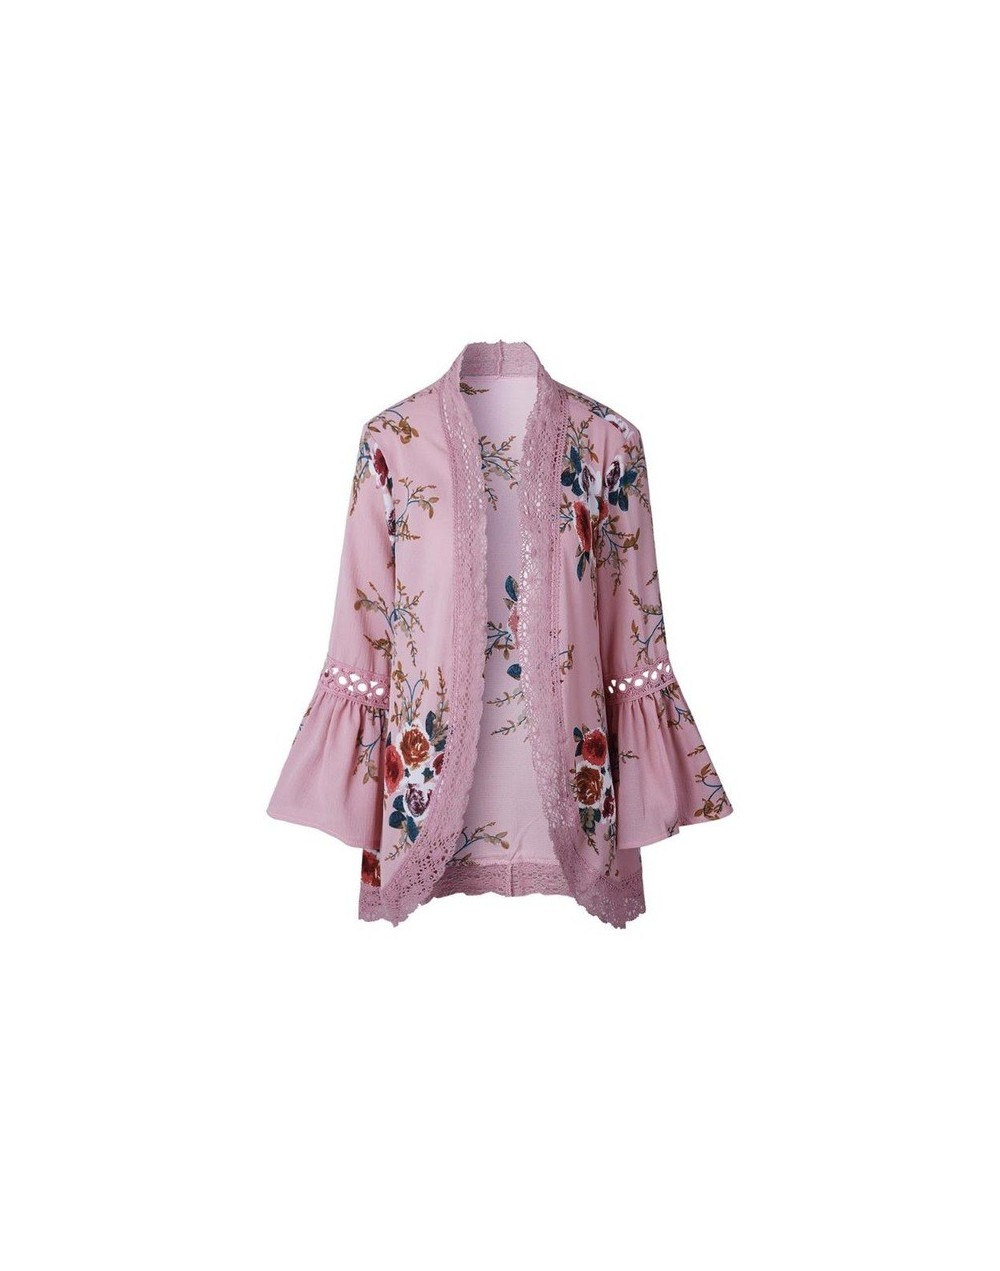 2019 Elegant Lace Floral Women Hollow Out Casual Cardigan Flare Sleeve Cardigan Print Tops Cover Up Blouses Beachwear - Pink...